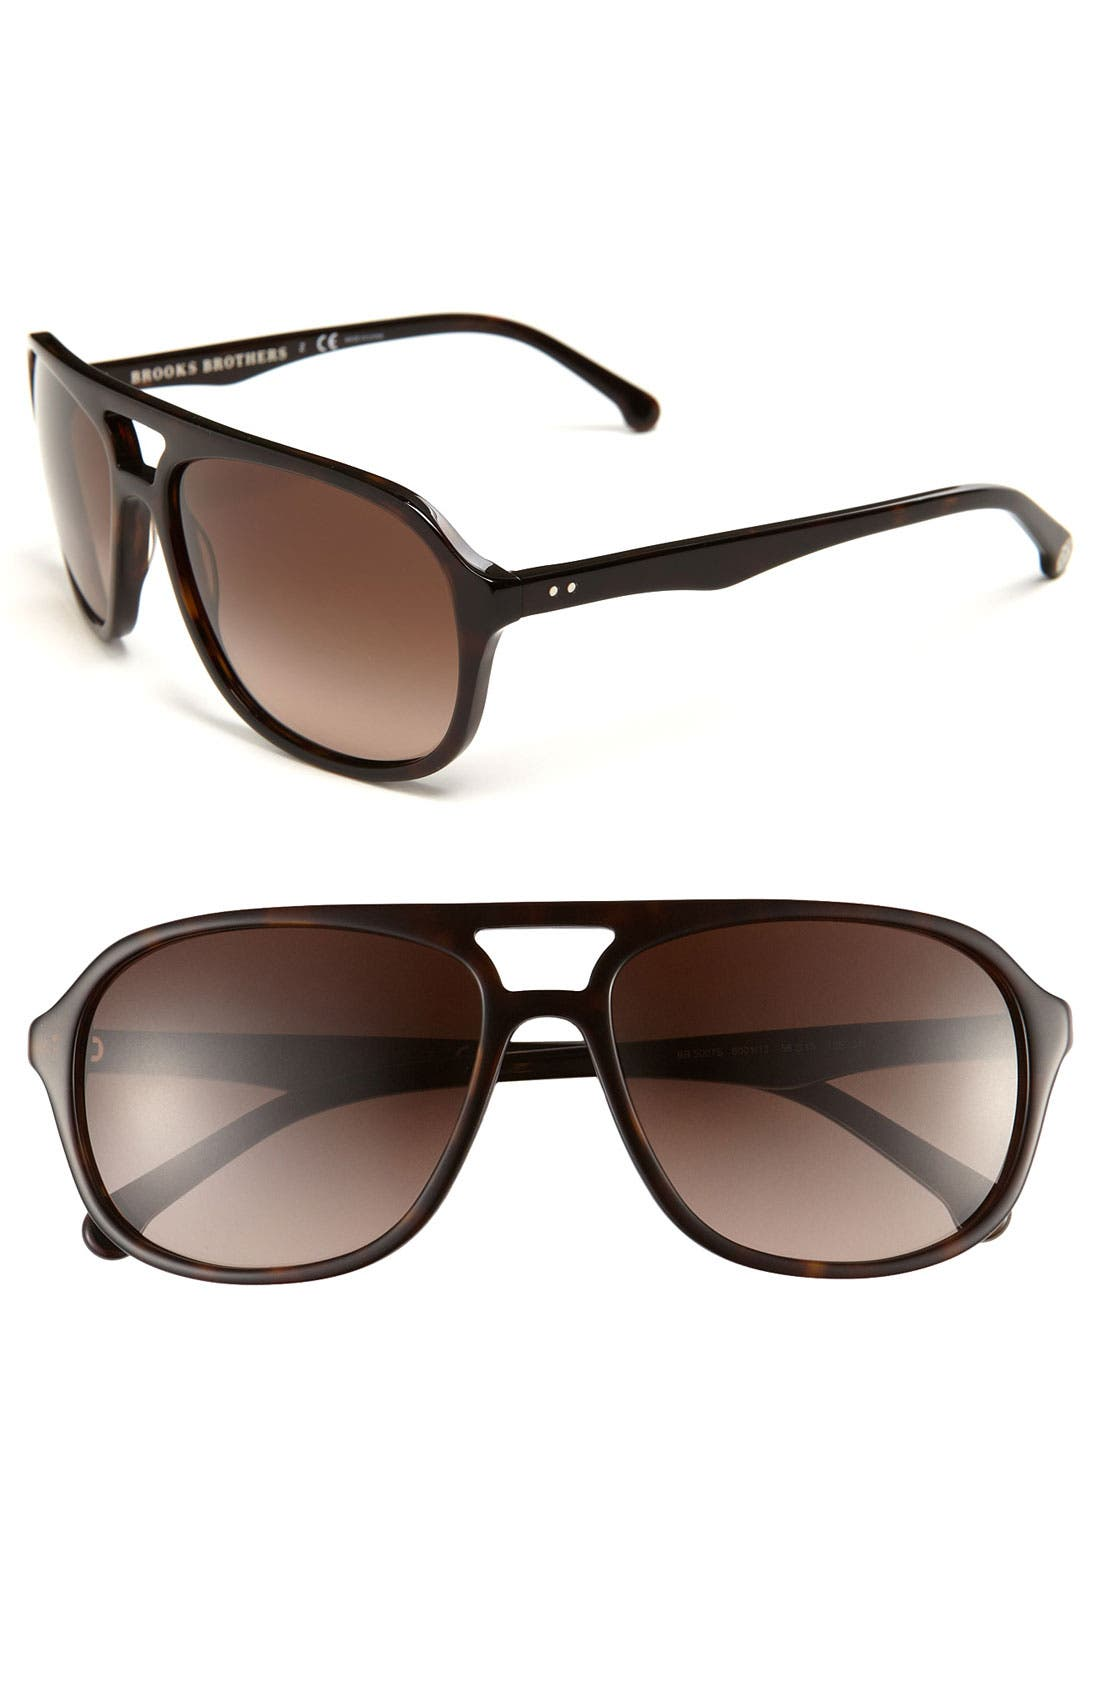 Alternate Image 1 Selected - Brooks Brothers Square 58mm Aviator Sunglasses